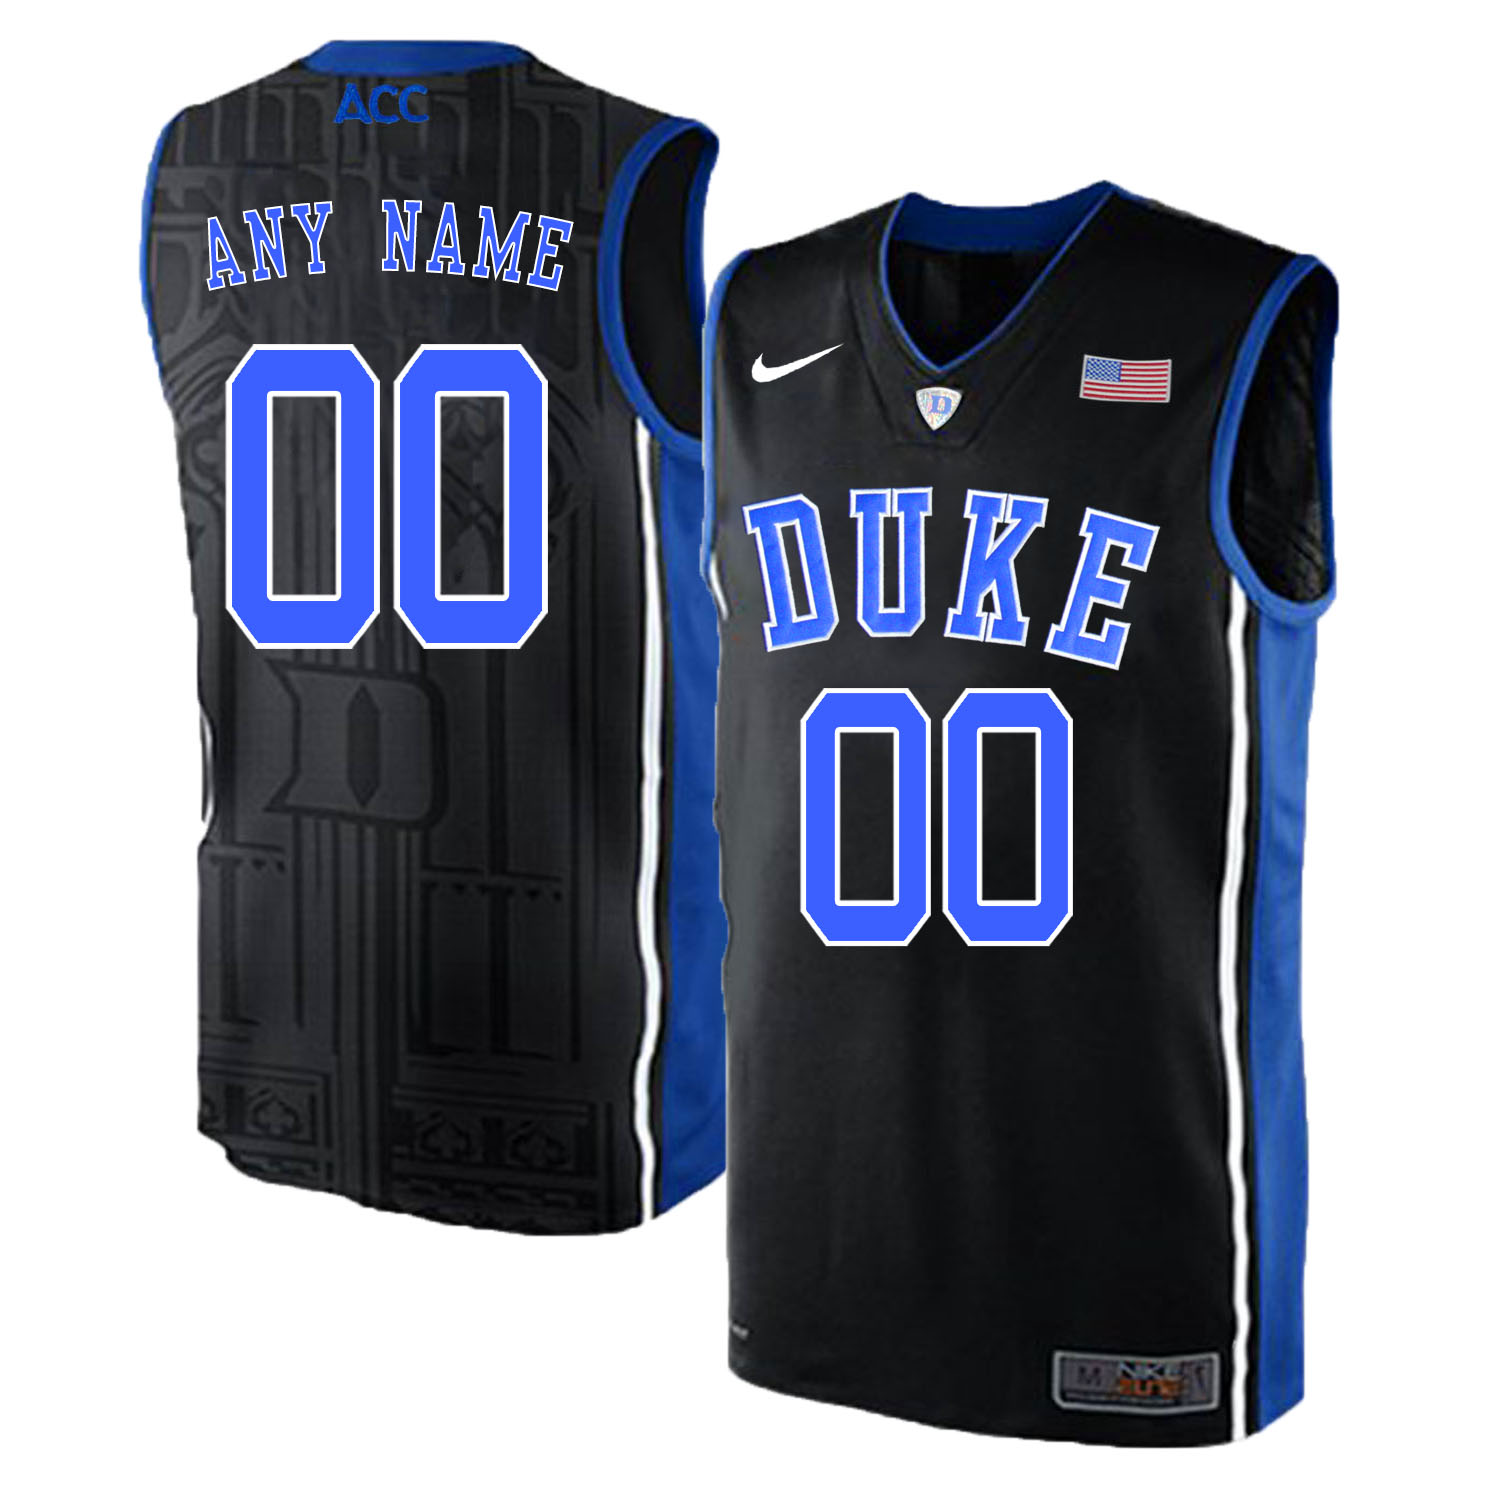 Duke Blue Devils Men's Customized Black Elite Nike College Basketball Jersey